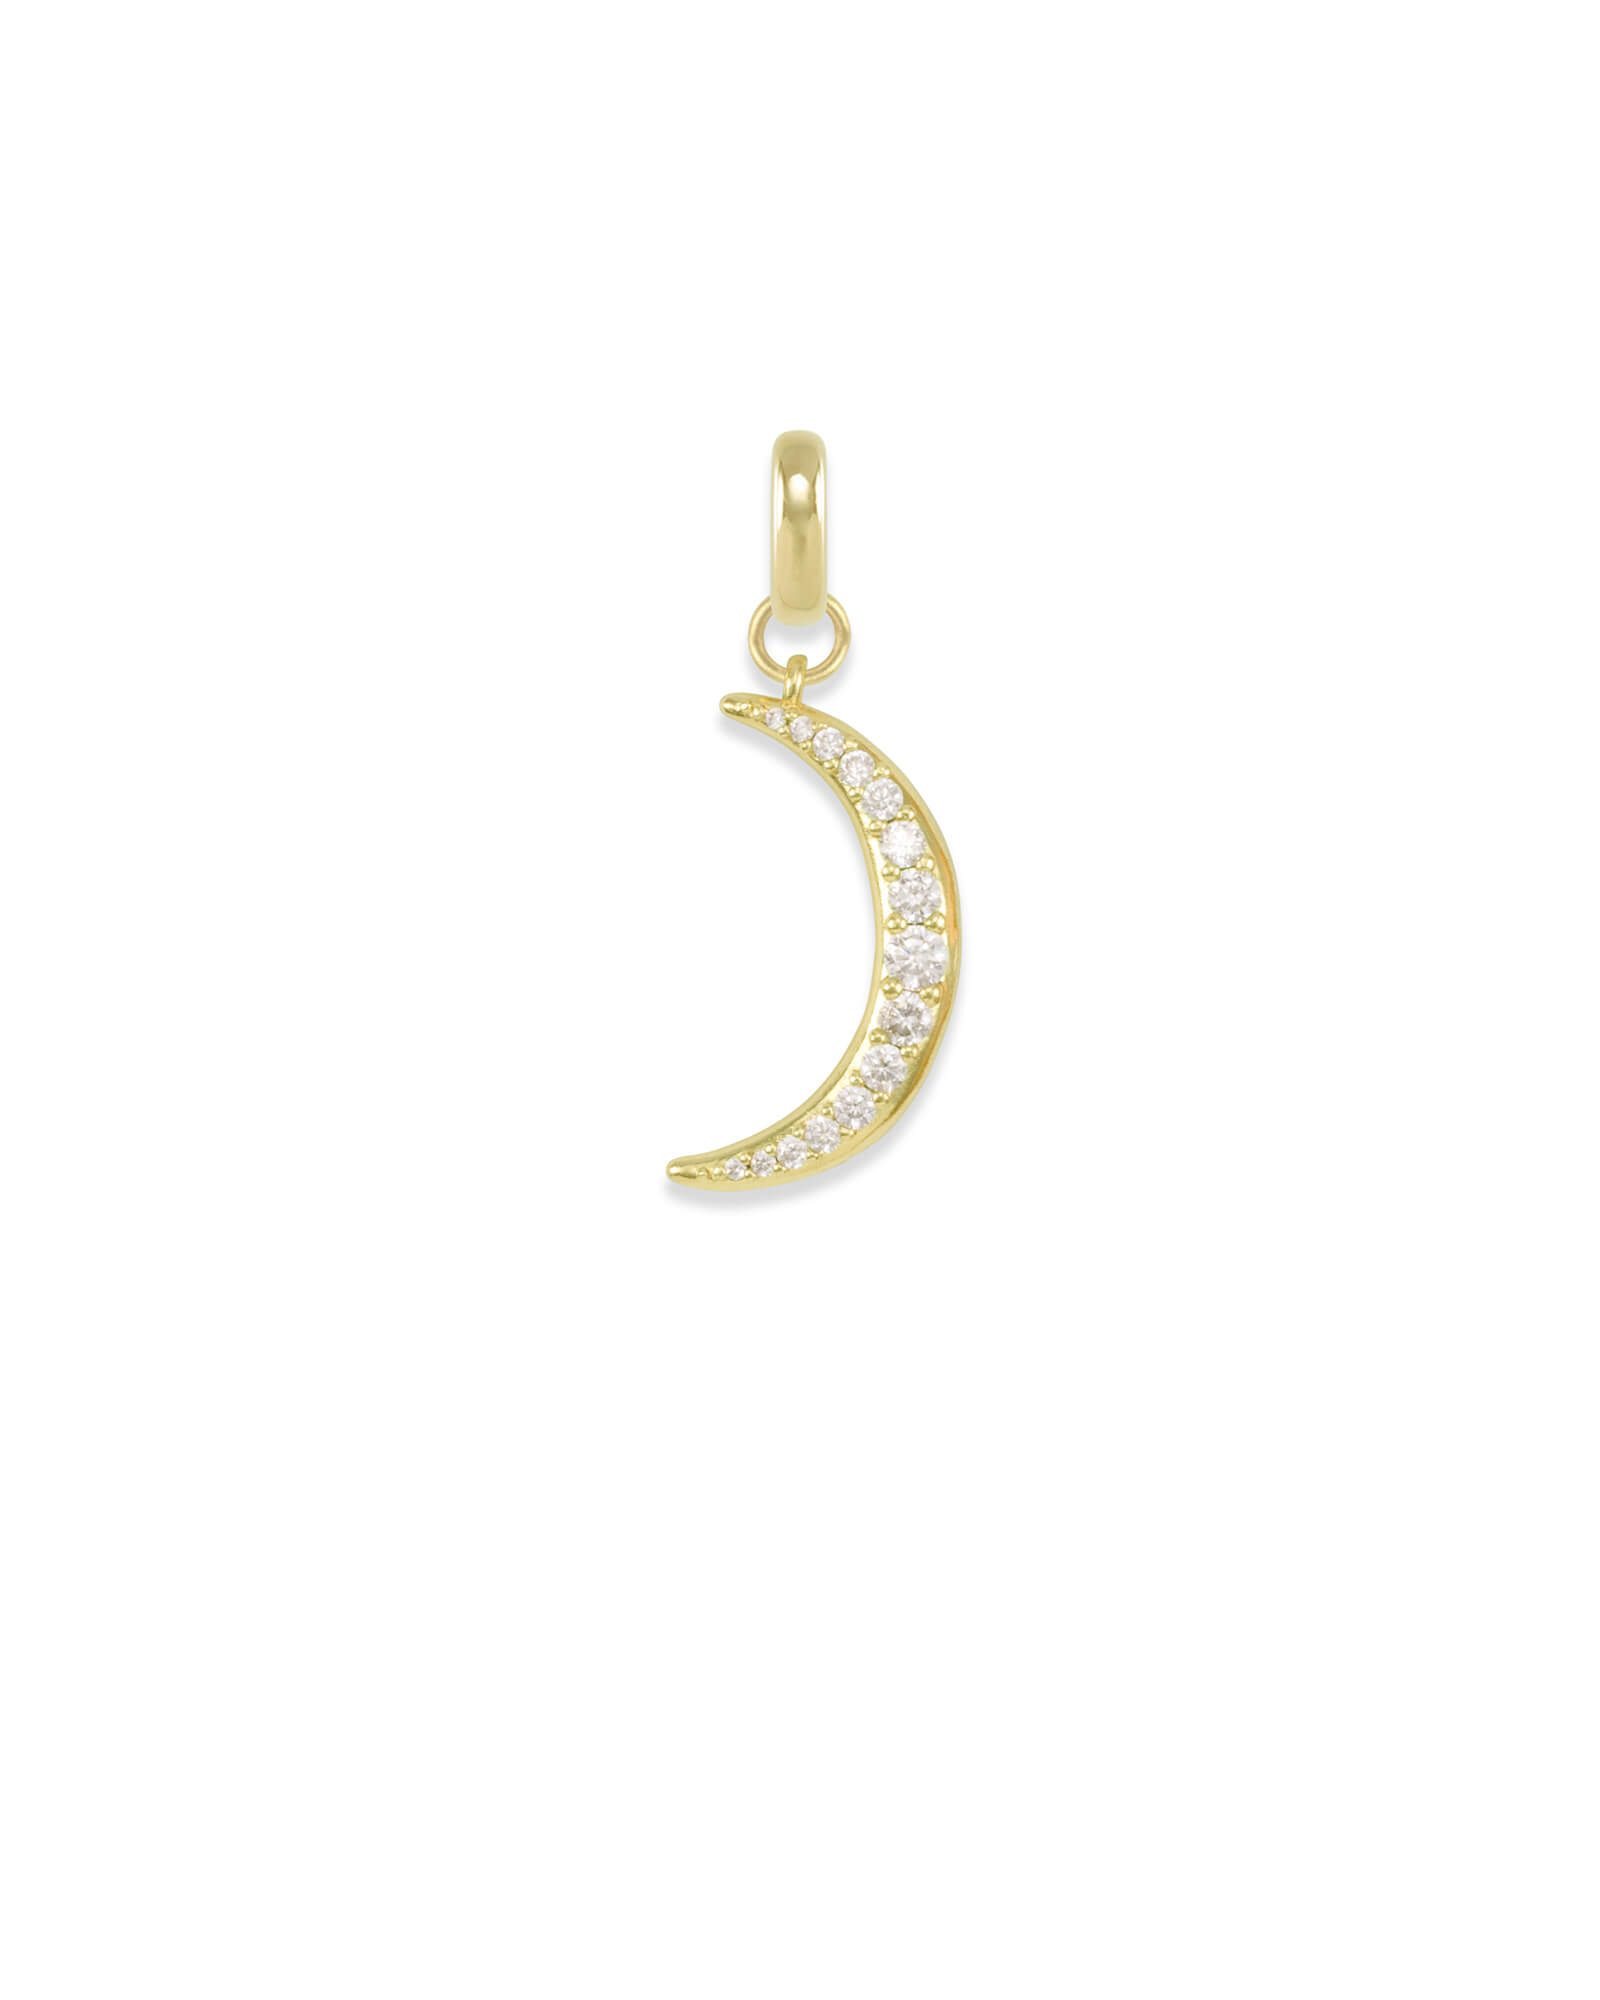 Small Crescent Moon Charm in Gold